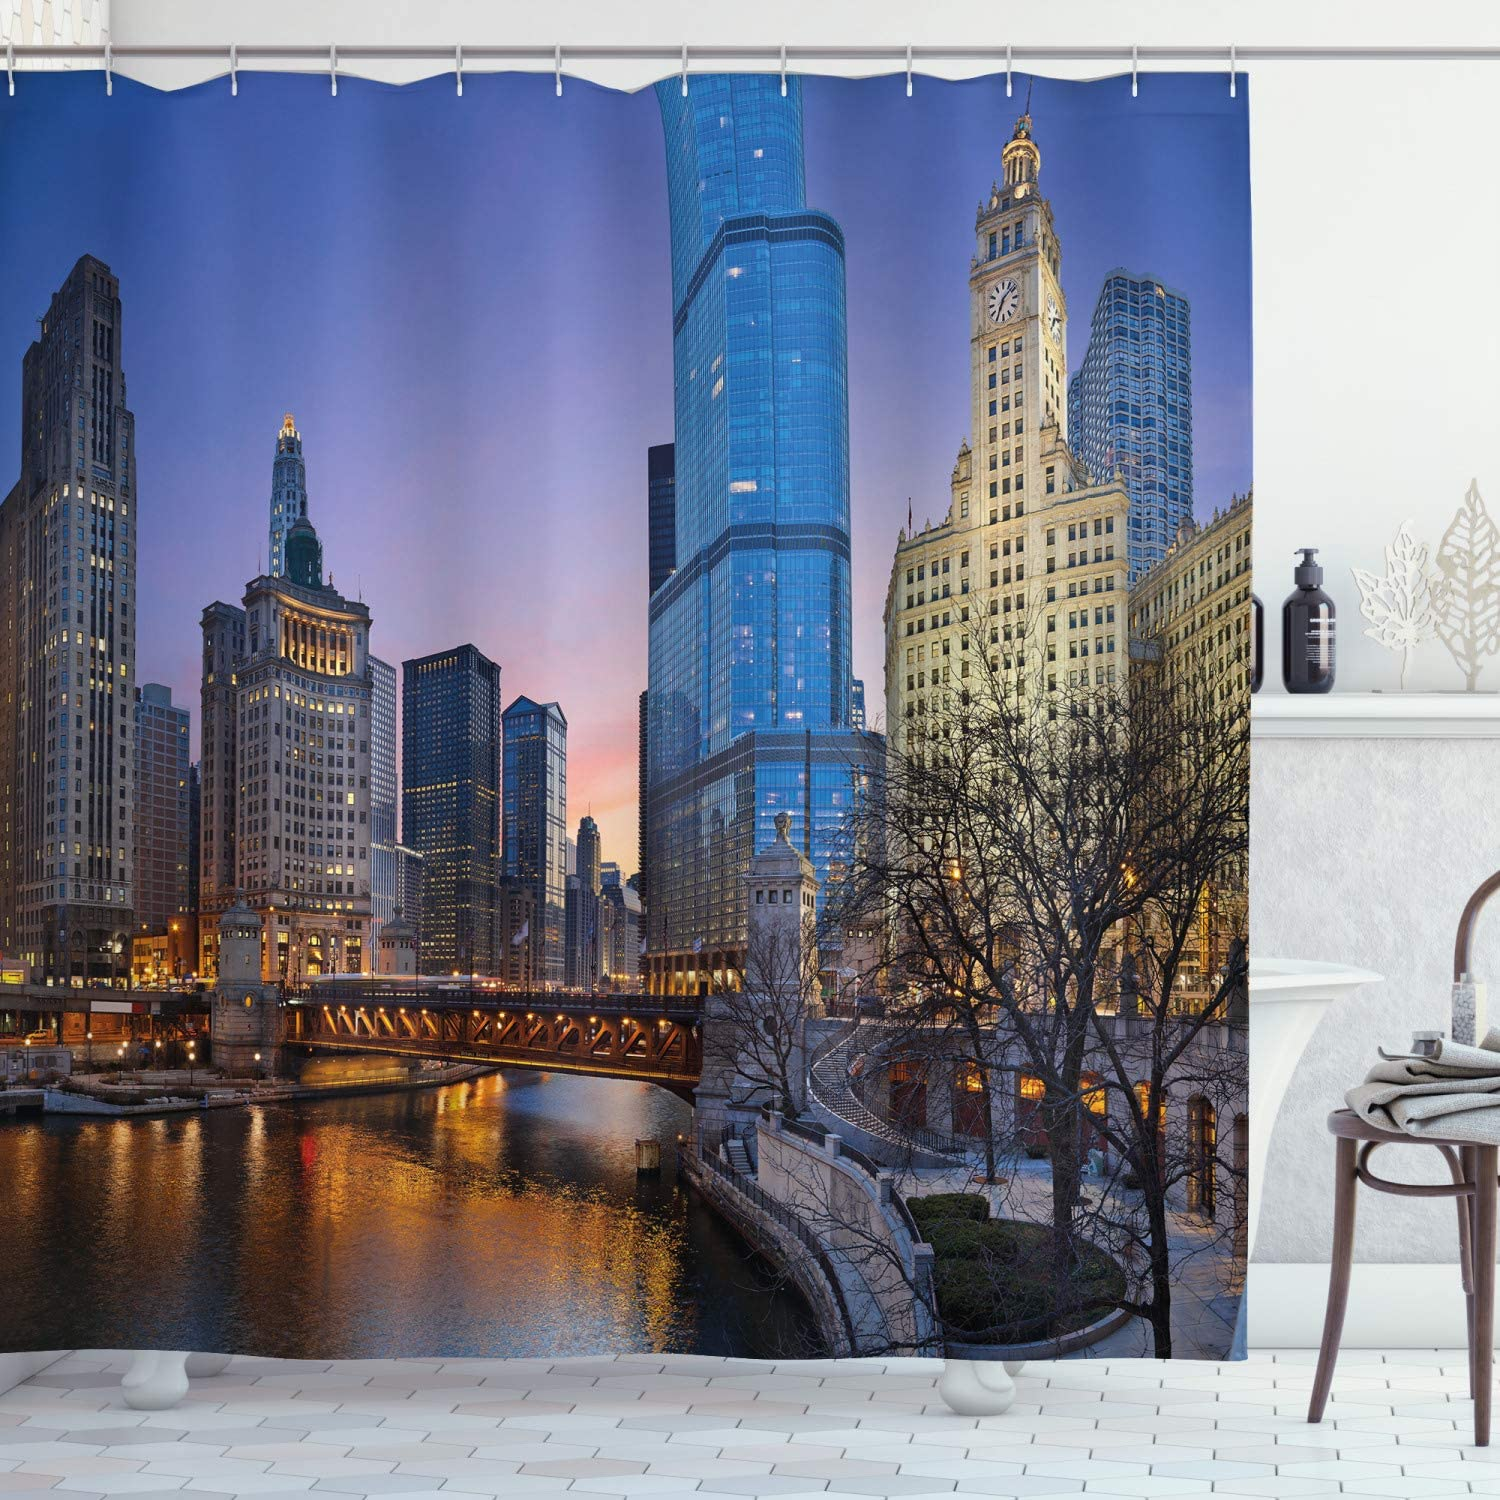 Ambesonne Landscape Shower Curtain, USA Chicago Cityscape with Rivers Bridge and Skyscrapers Cosmopolitan City Image, Cloth Fabric Bathroom Decor Set with Hooks, 75